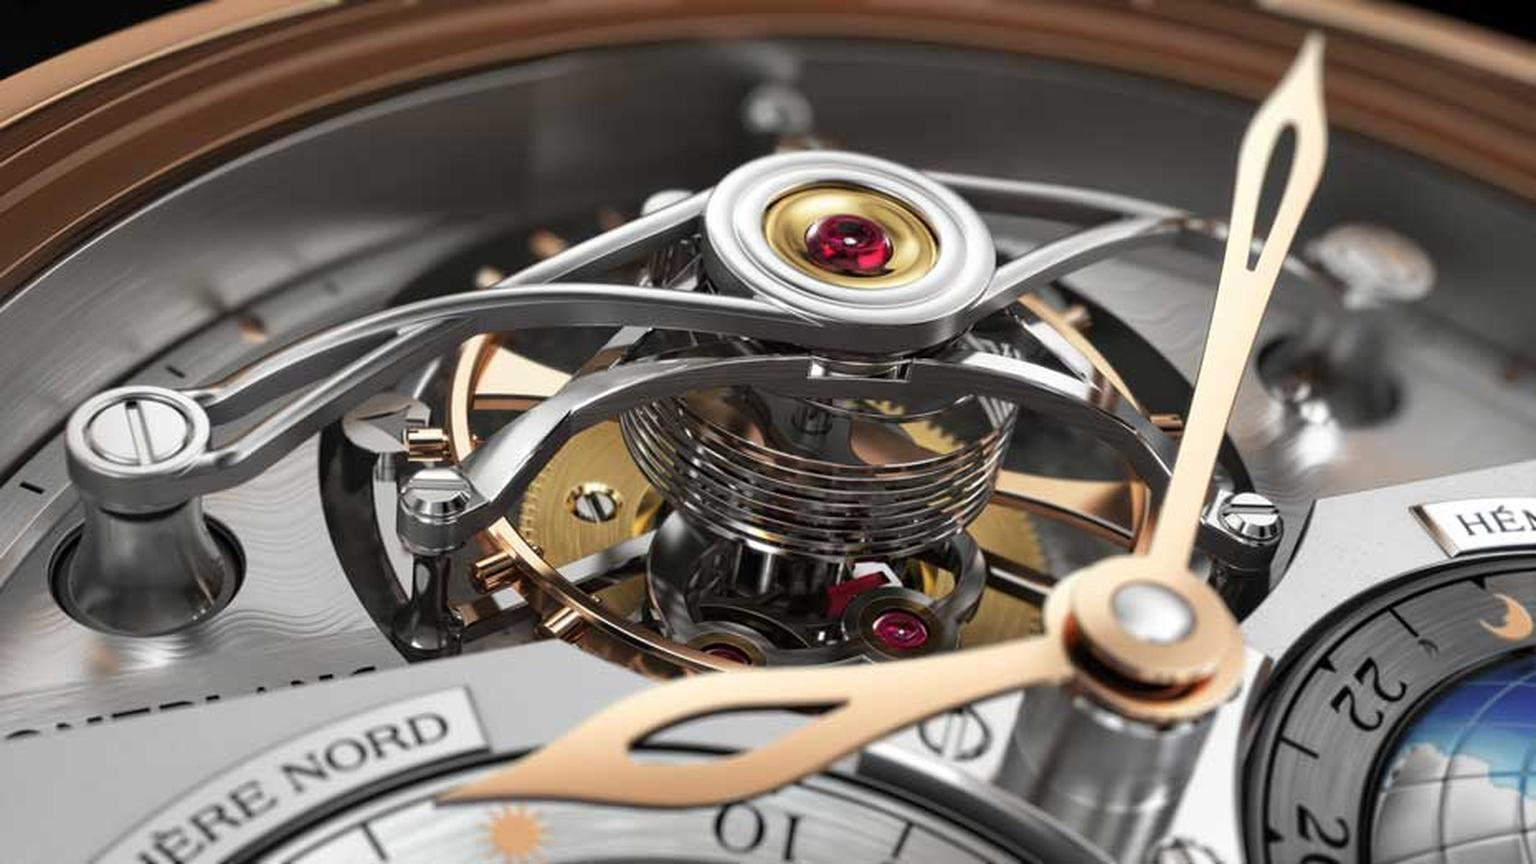 Montblanc Tourbillon Cylindrique Geosphères Vasco da Gama showcases its tourbillon mounted on a cylindrical hairspring, similar to the ones originally used on high-precision marine chronometers.